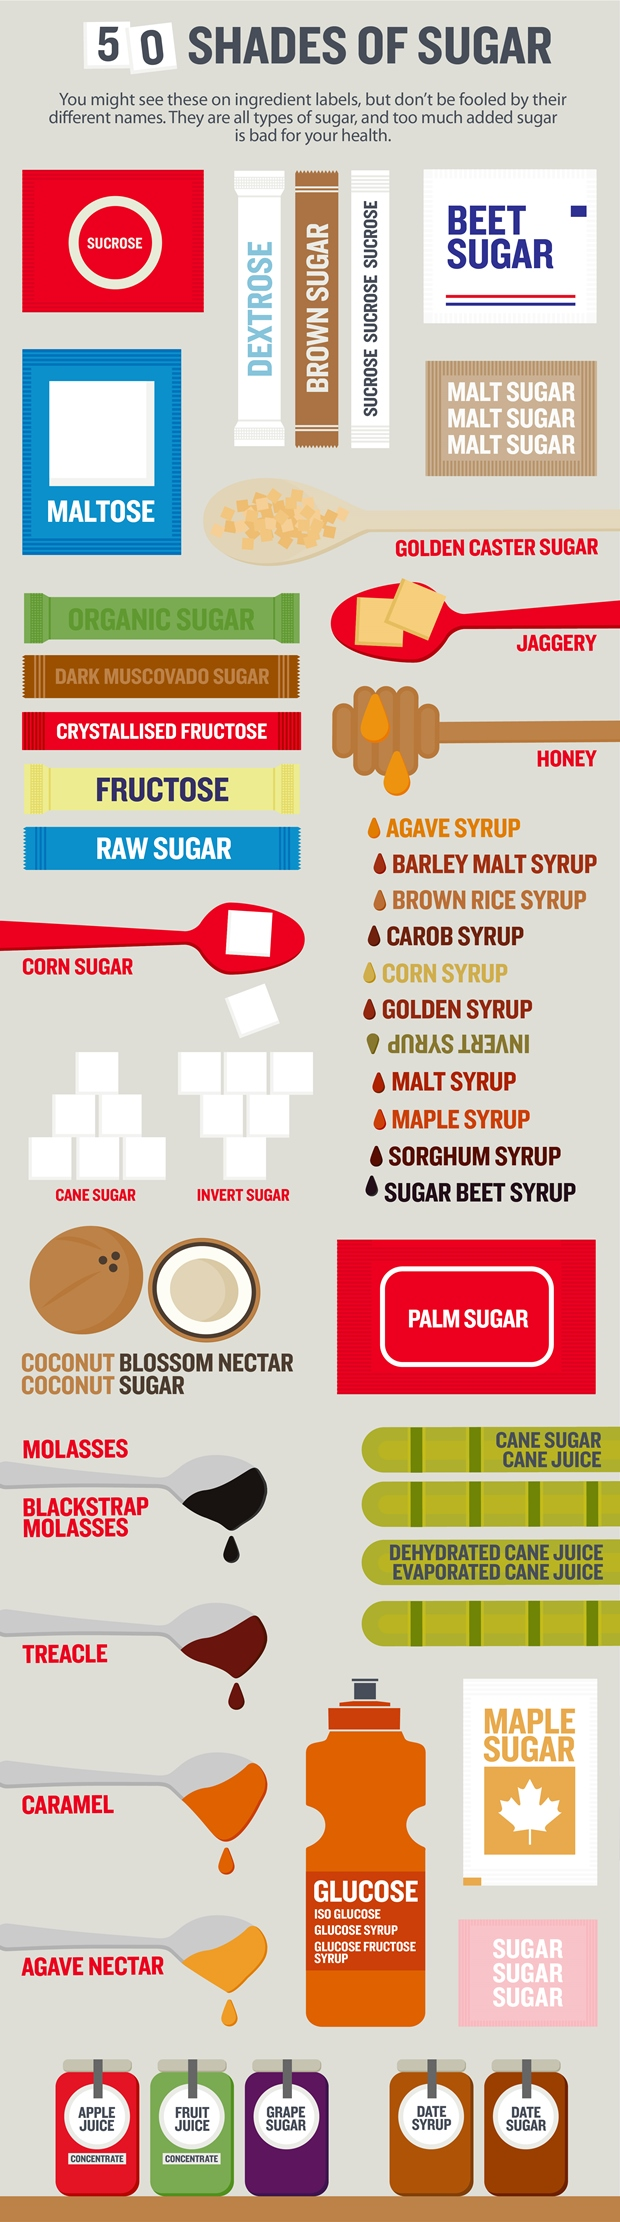 The Many Shades of Sugar - Infographic